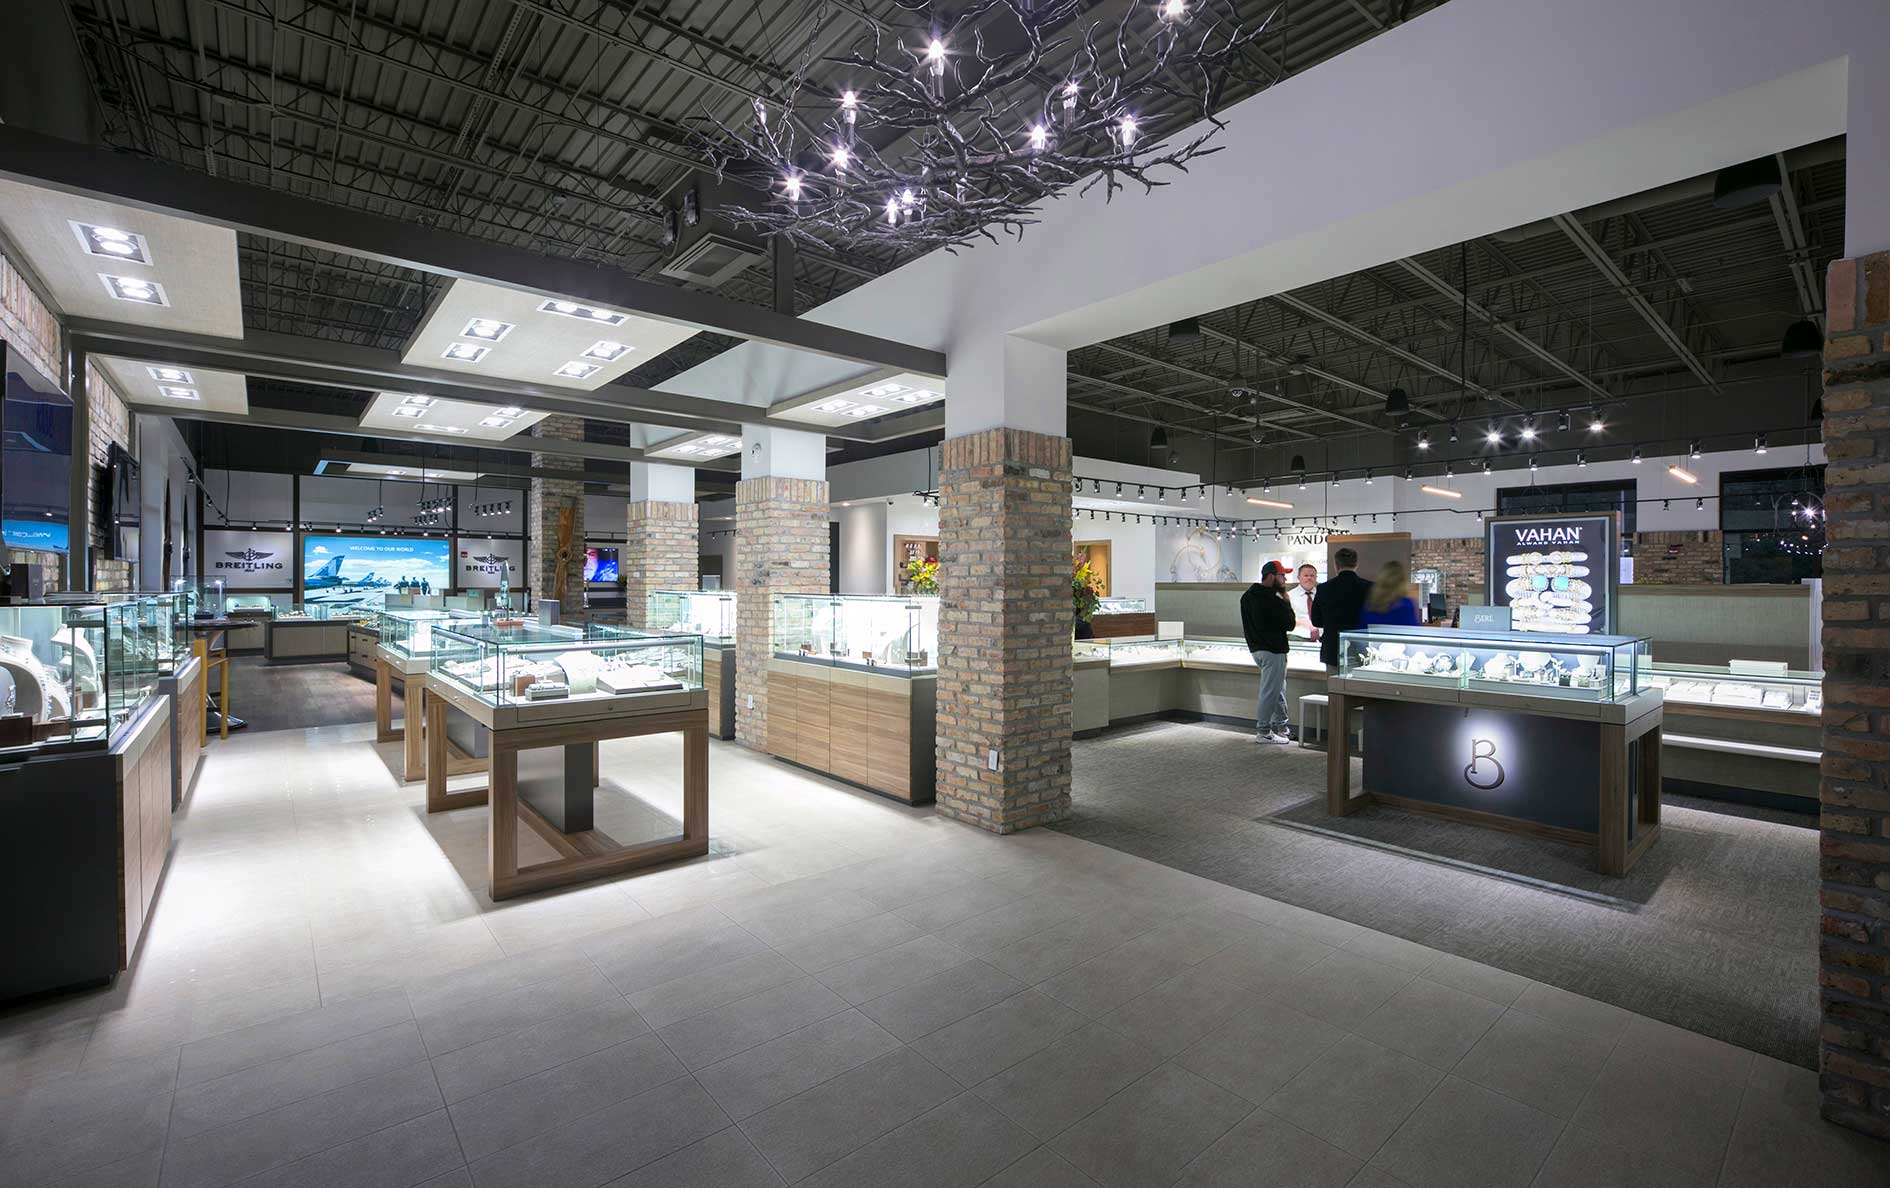 An openfloorplan and varied materials create a modern look at Beré Jewelers in Pensacola